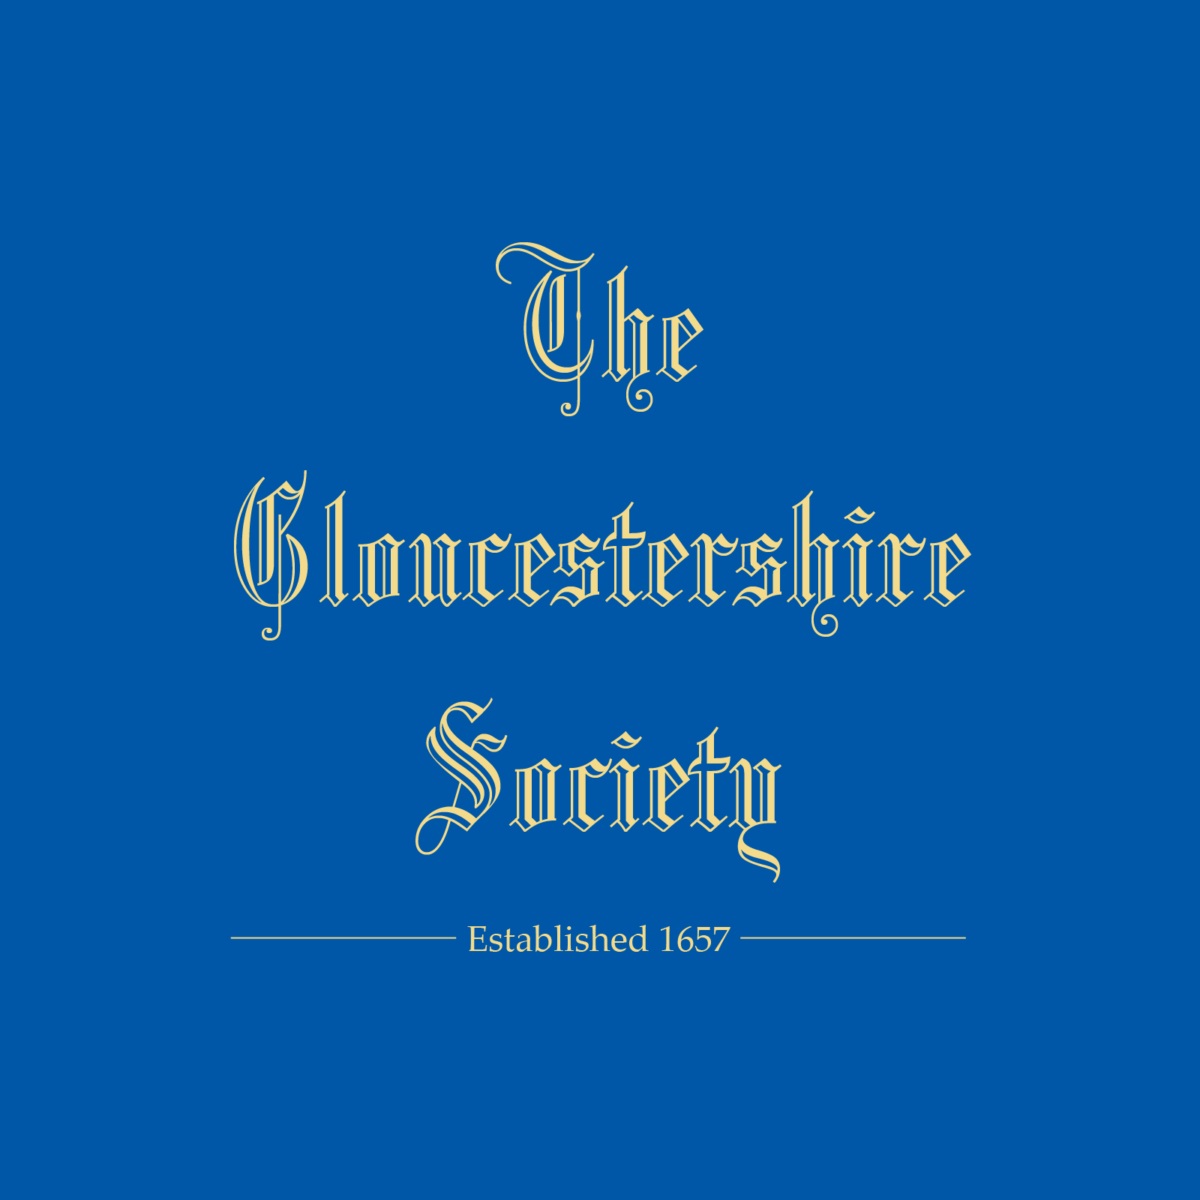 The Gloucestershire Society Logo